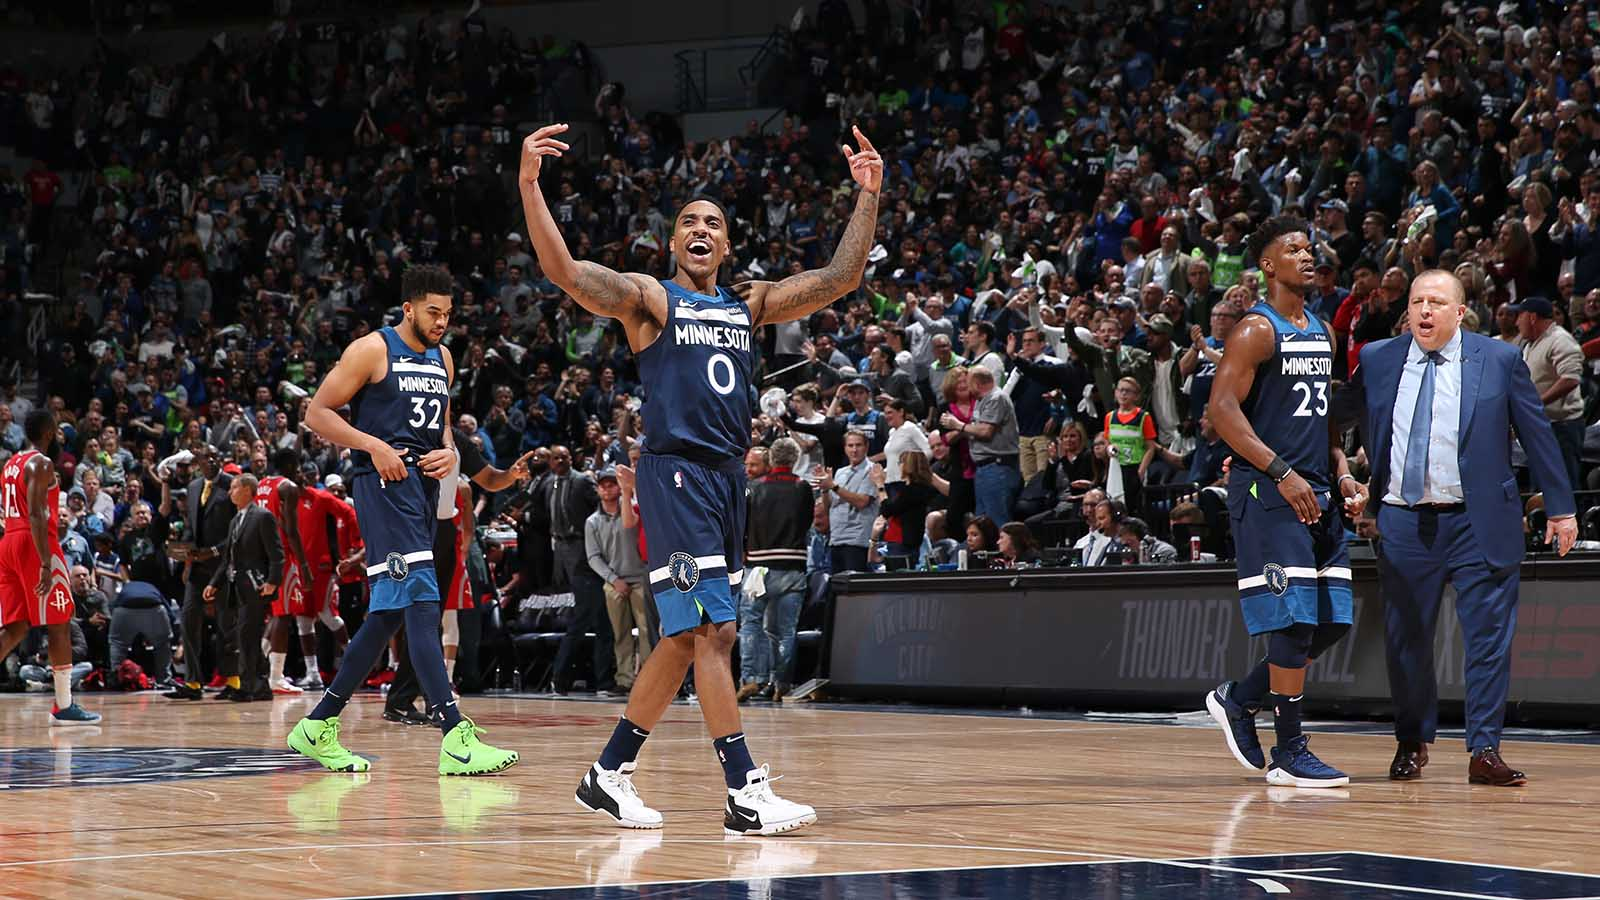 MINNEAPOLIS, MN -  APRIL 21: Jeff Teague #0 of the Minnesota Timberwolves reacts in Game Three of Round One of the 2018 NBA Playoffs against the Houston Rockets on April 21, 2018 at Target Center in Minneapolis, Minnesota. NOTE TO USER: User expressly acknowledges and agrees that, by downloading and or using this Photograph, user is consenting to the terms and conditions of the Getty Images License Agreement. Mandatory Copyright Notice: Copyright 2018 NBAE (Photo by David Sherman/NBAE via Getty Images)